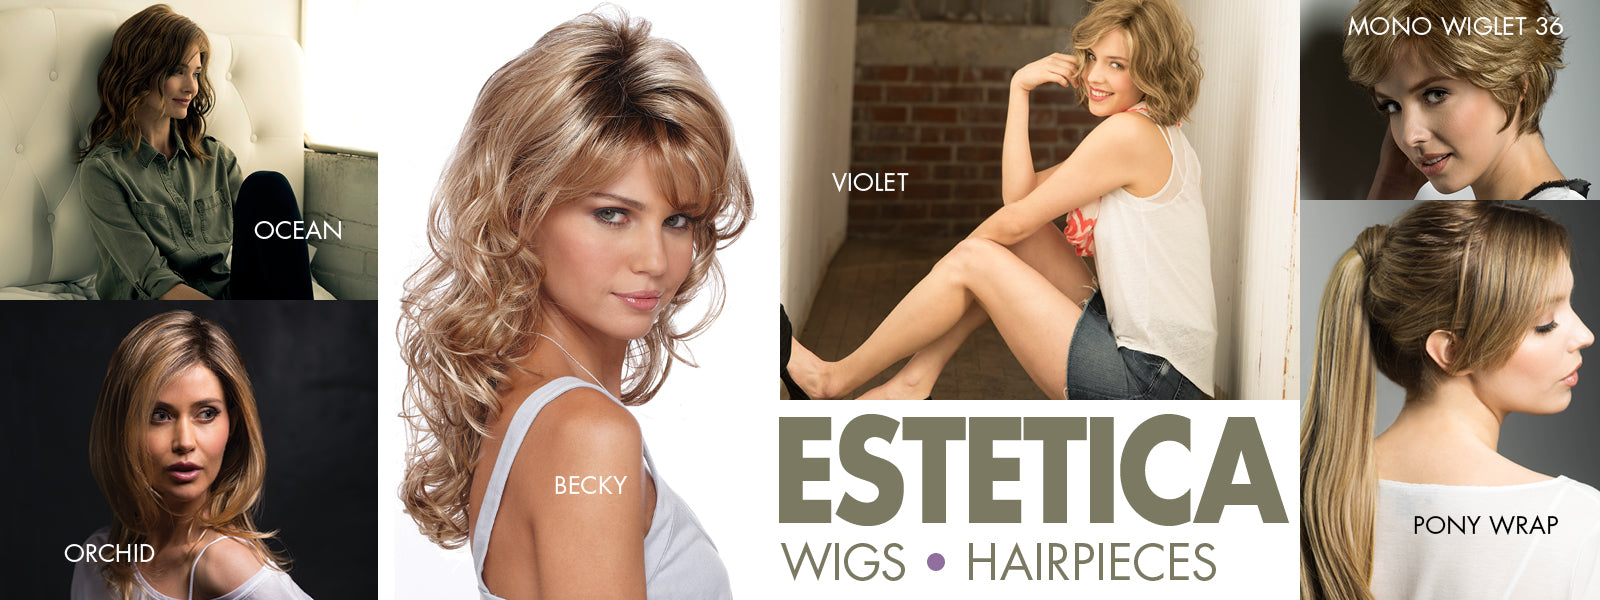 Estetica Designs Wigs and Hairpieces available at Abantu